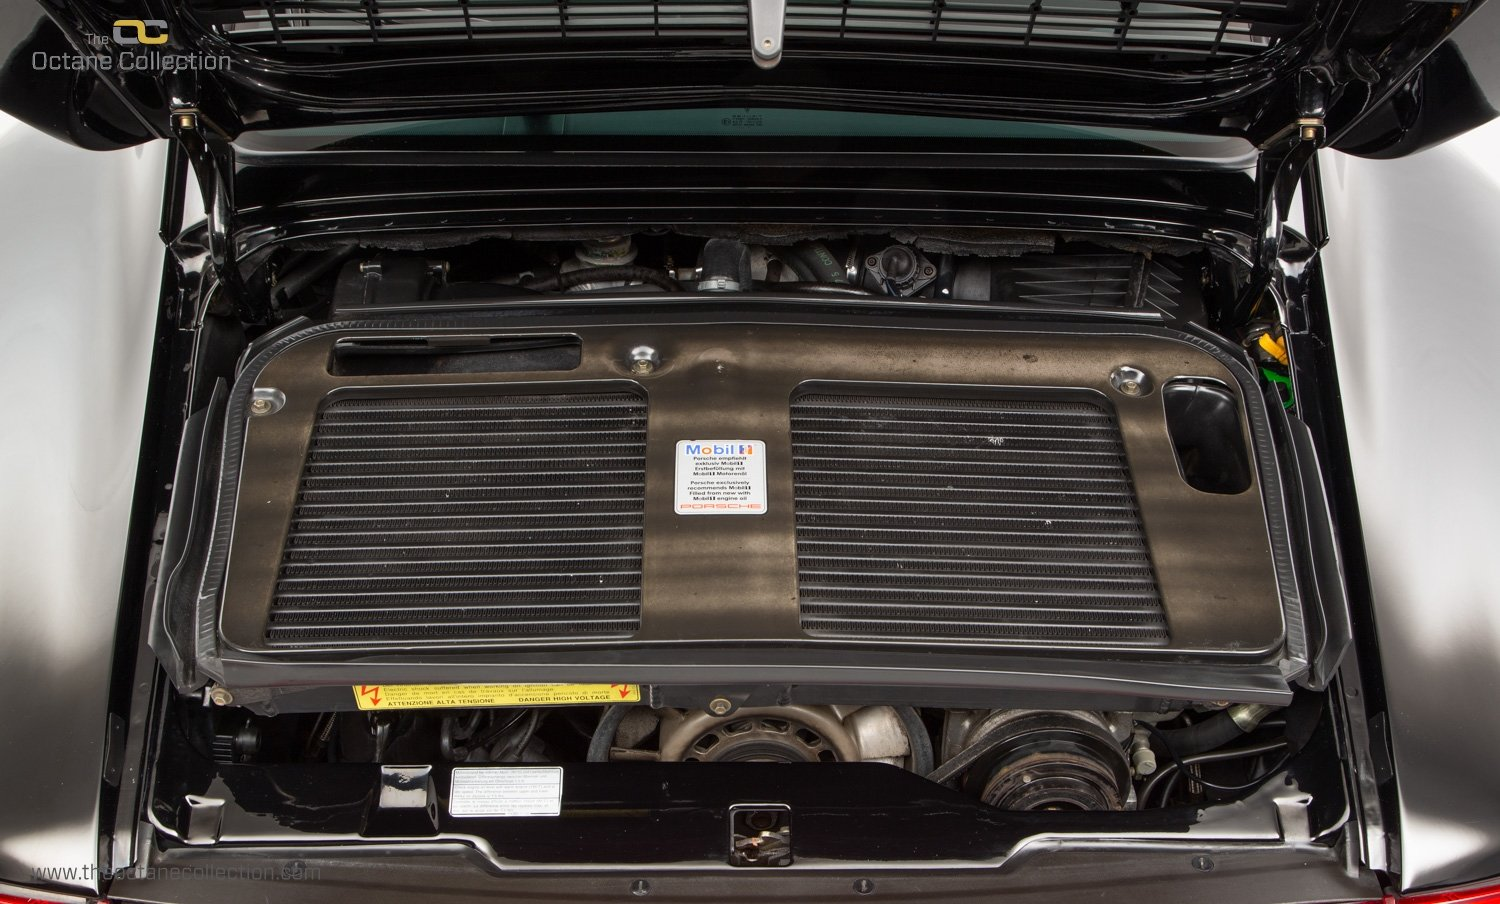 1998 PORSCHE 993 TURBO S // 1 OF 23 RHD CARS // UK C16 // FPSH For Sale (picture 21 of 24)